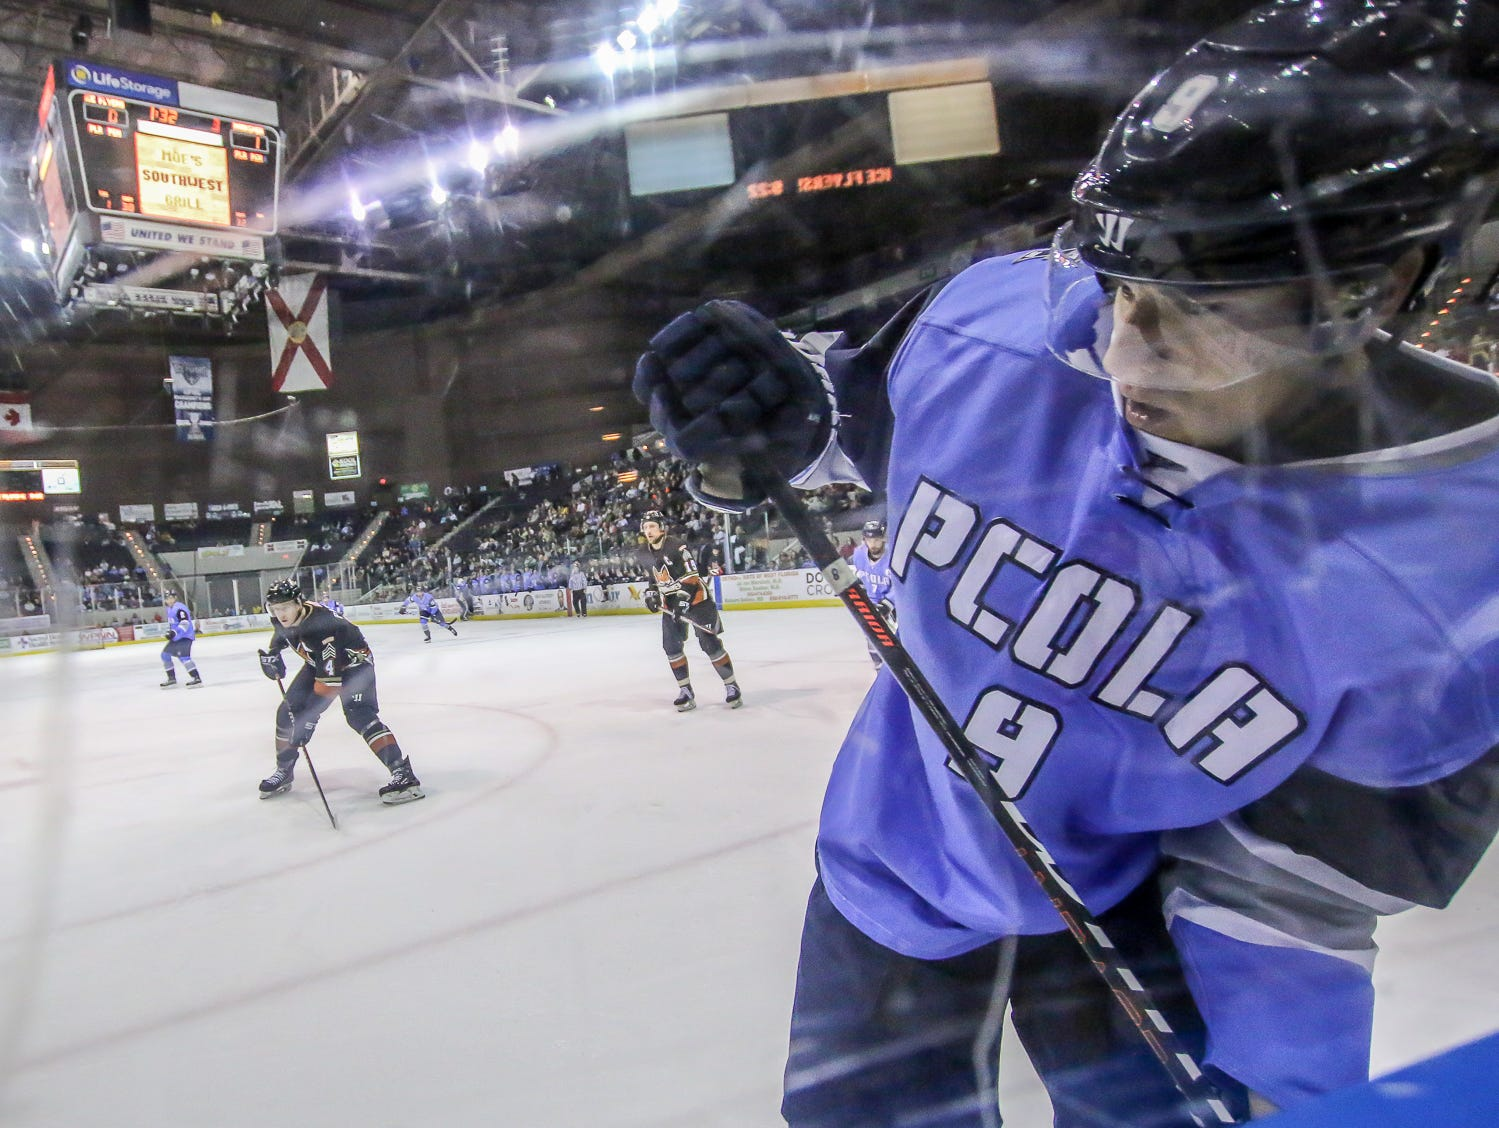 Pensacola's Ryan Marcuz (9) goes up along the glass to clear the puck against Fayetteville at the Pensacola Bay Center on Saturday, January 5, 2019.